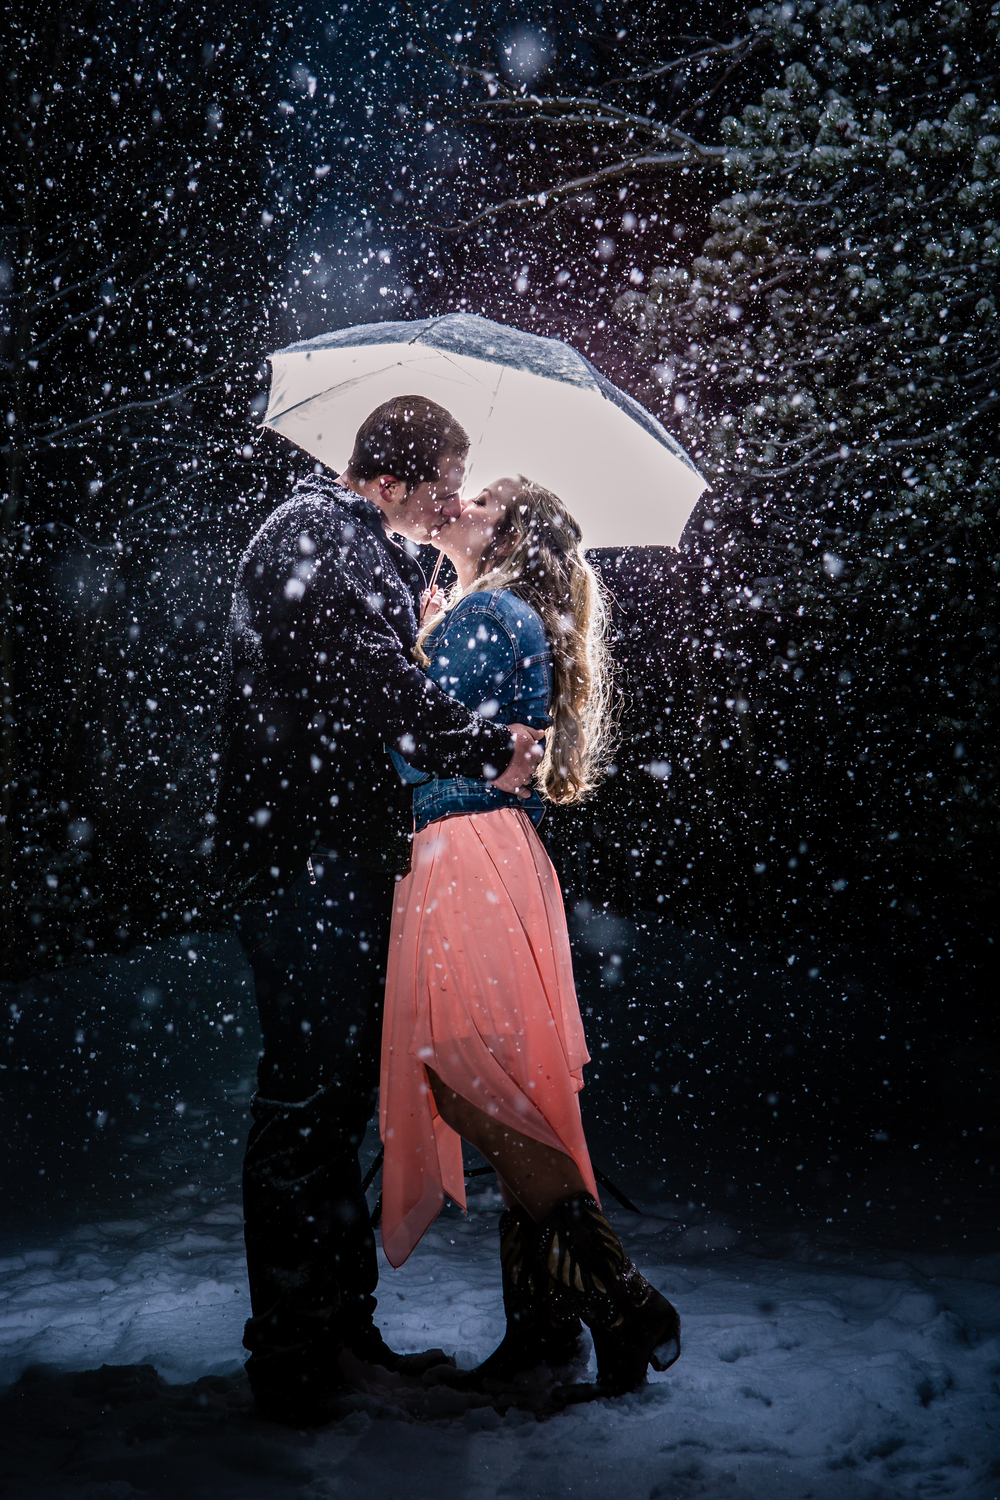 Lily Lake | Estes Park, Colorado | JMGant Photography | Snowy Engagements | Umbrella | www.jmgantphotography.com